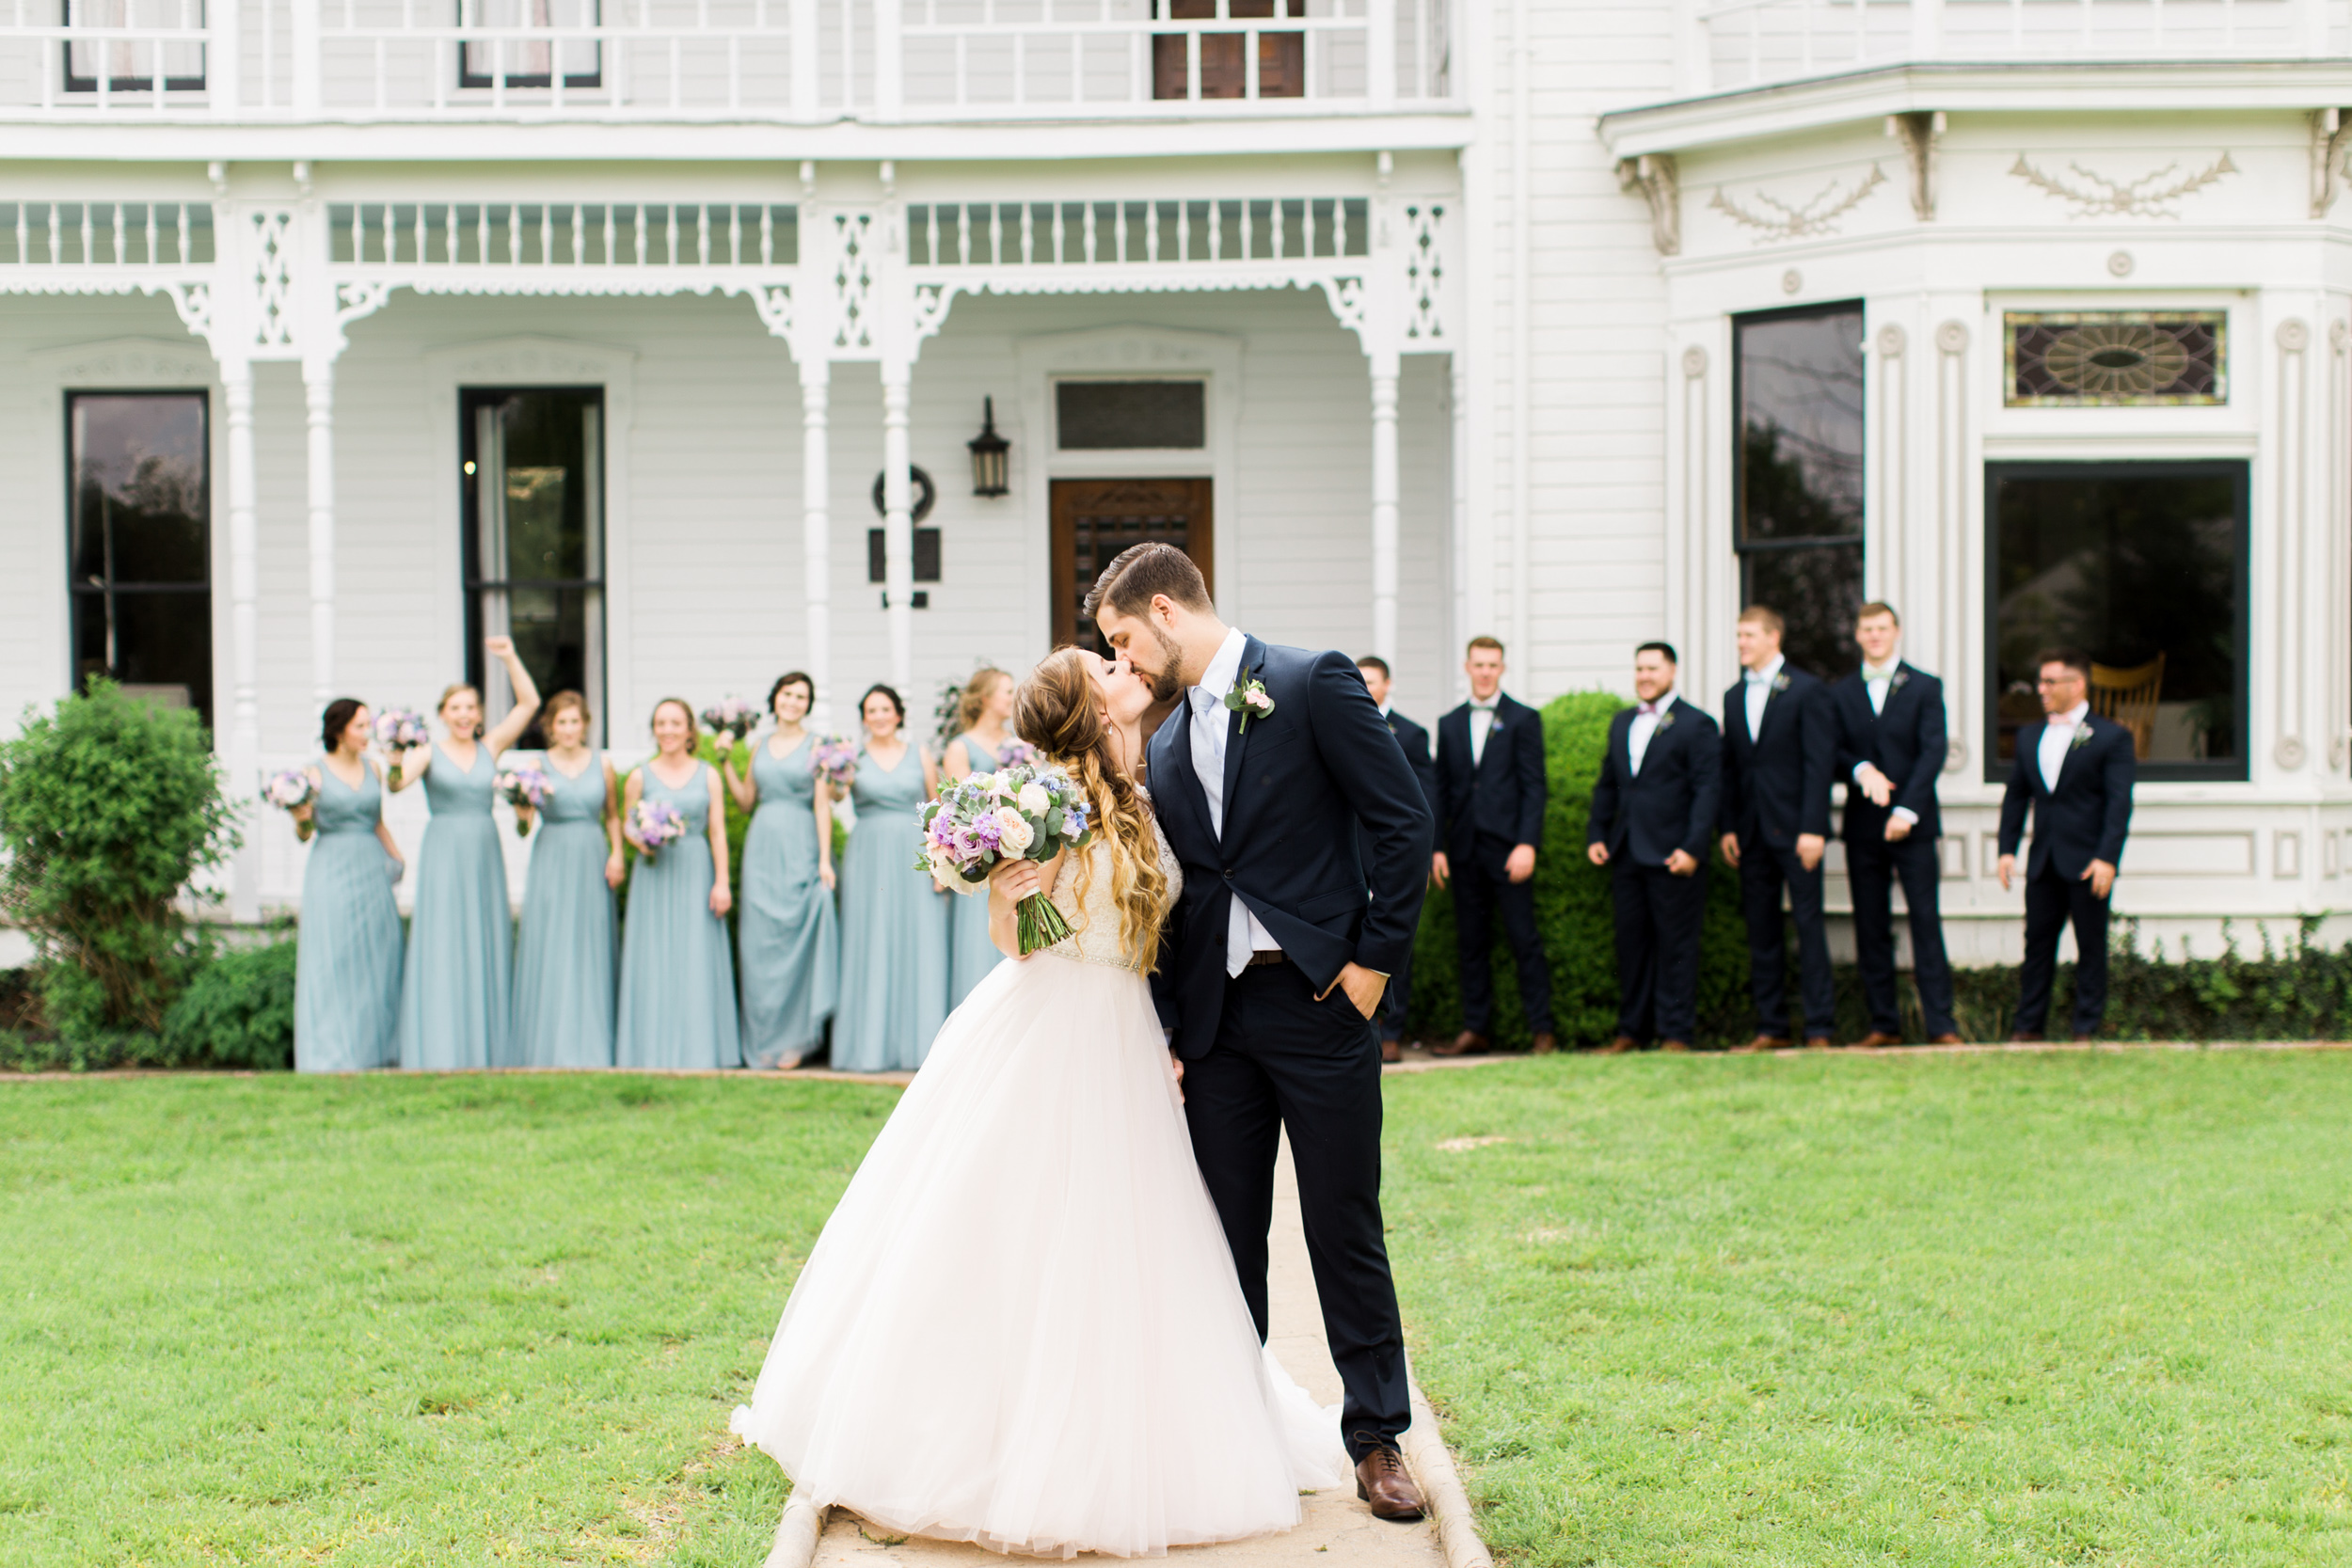 Barr_Mansion_Wedding-51.JPG